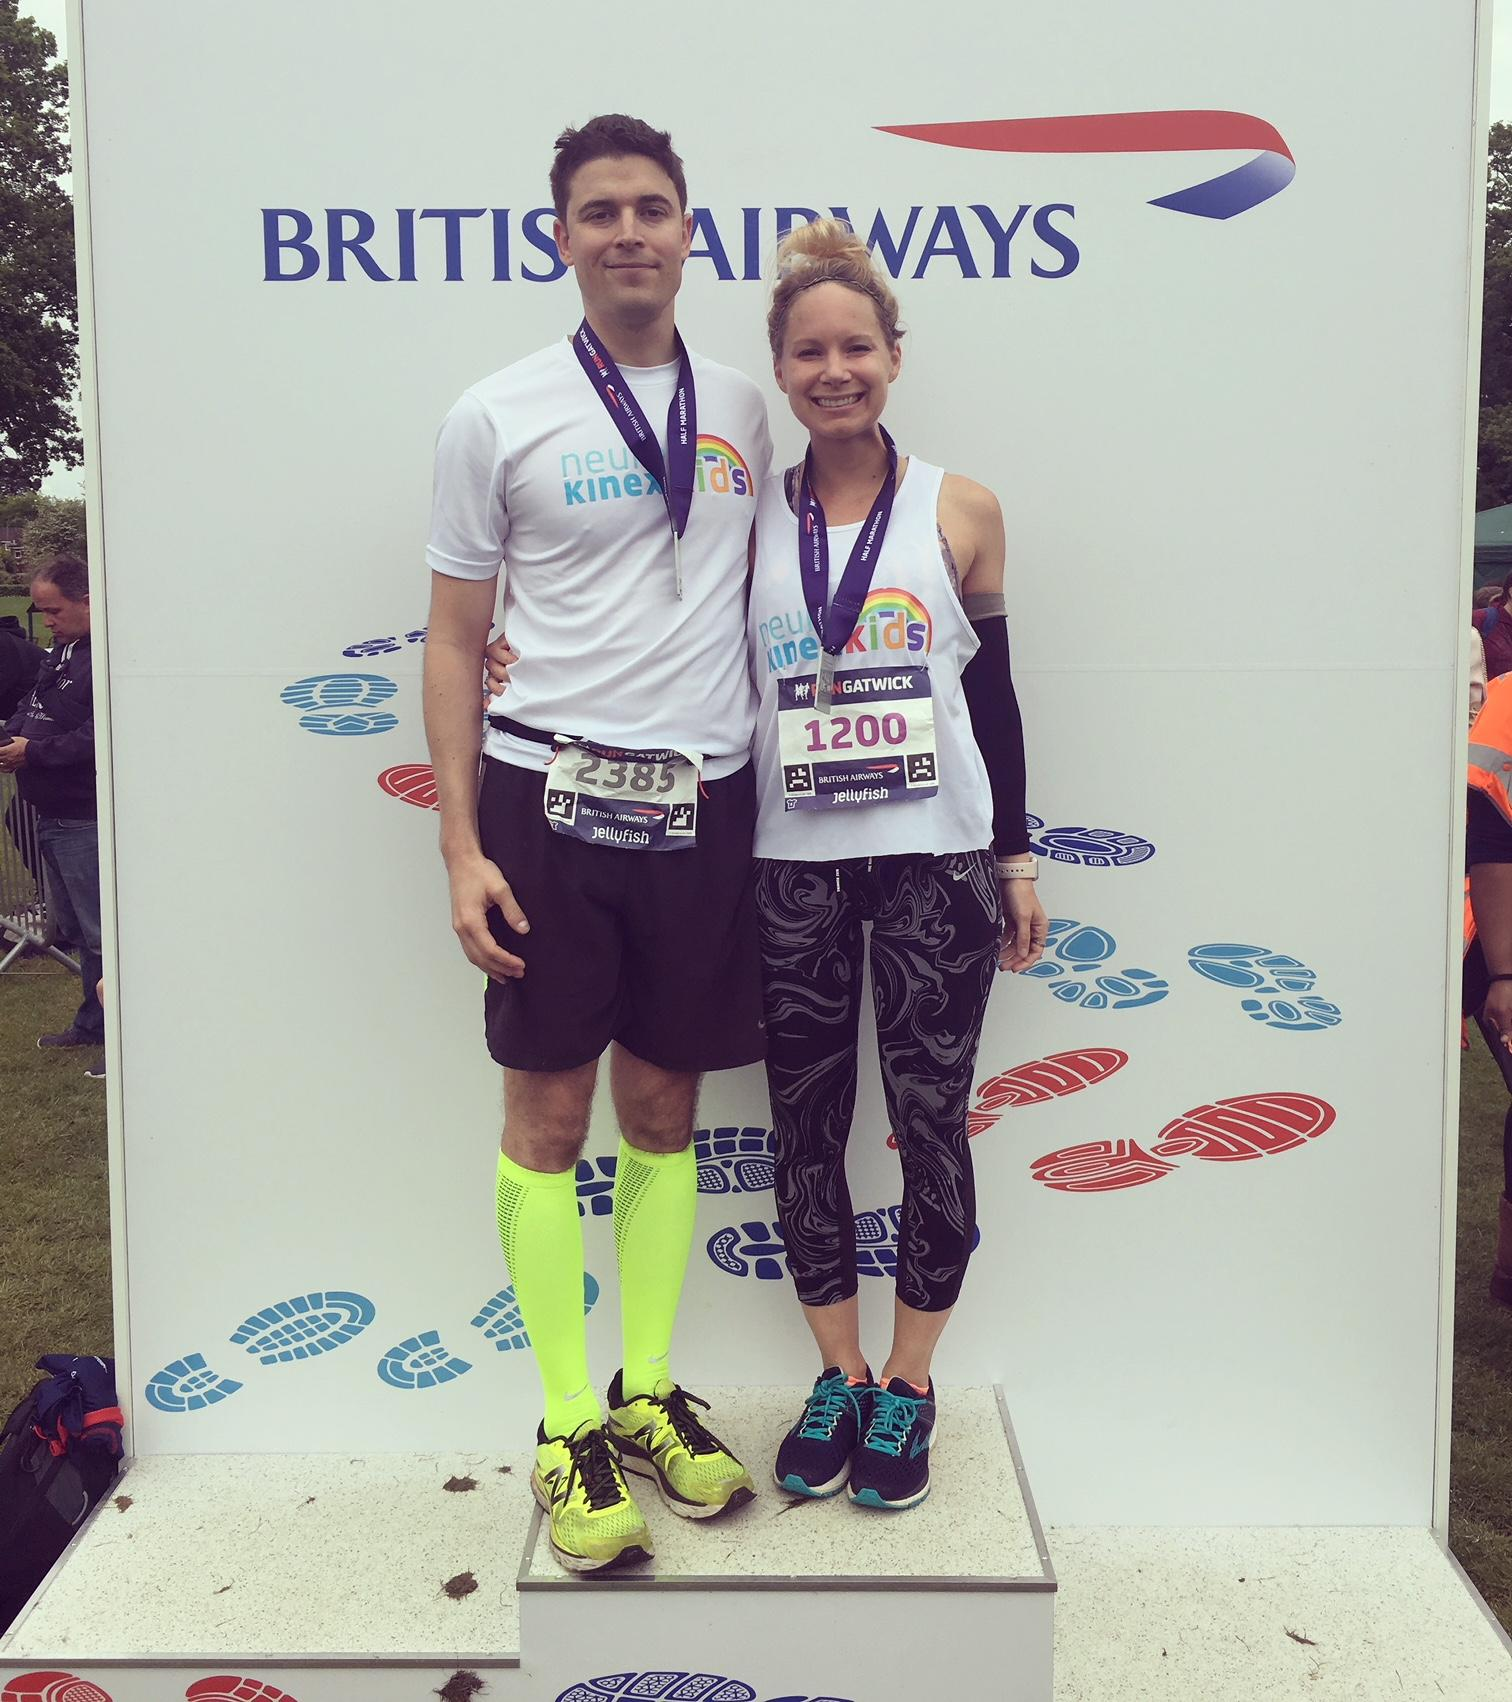 Run Gatwick race review